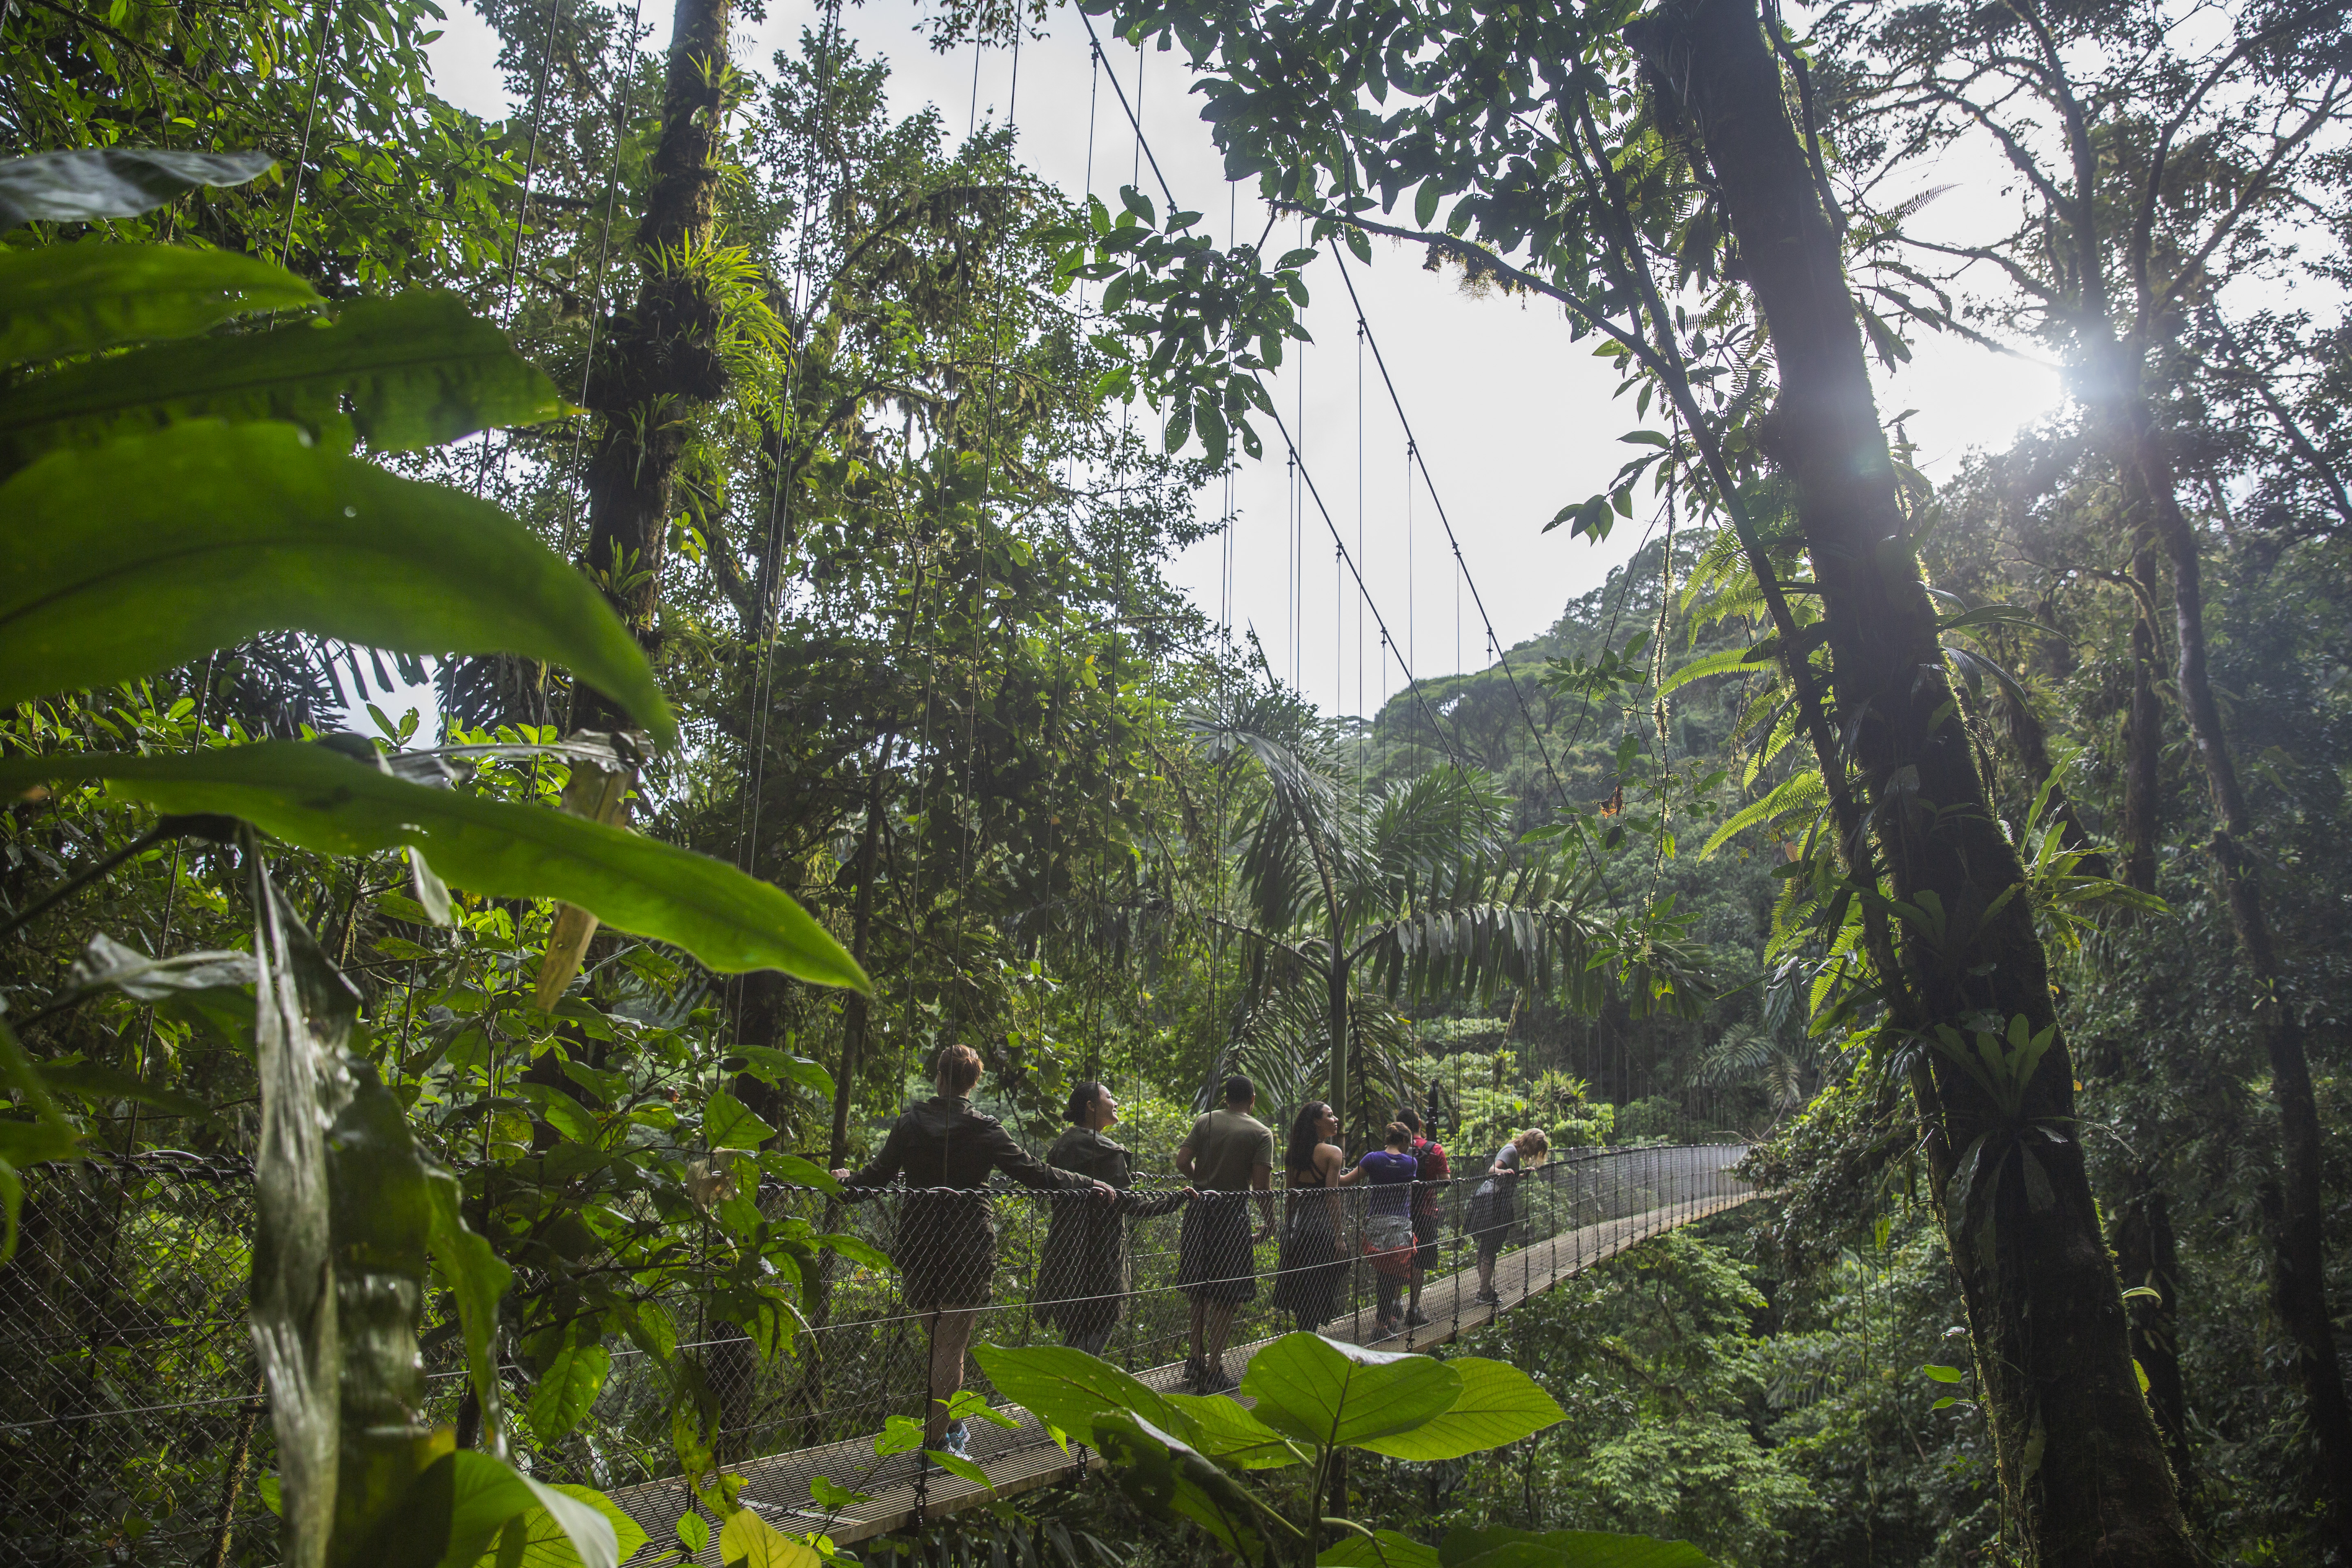 Powerpoint Bridge From Ceo Pack Explore Costa Rica In Central America G Adventures